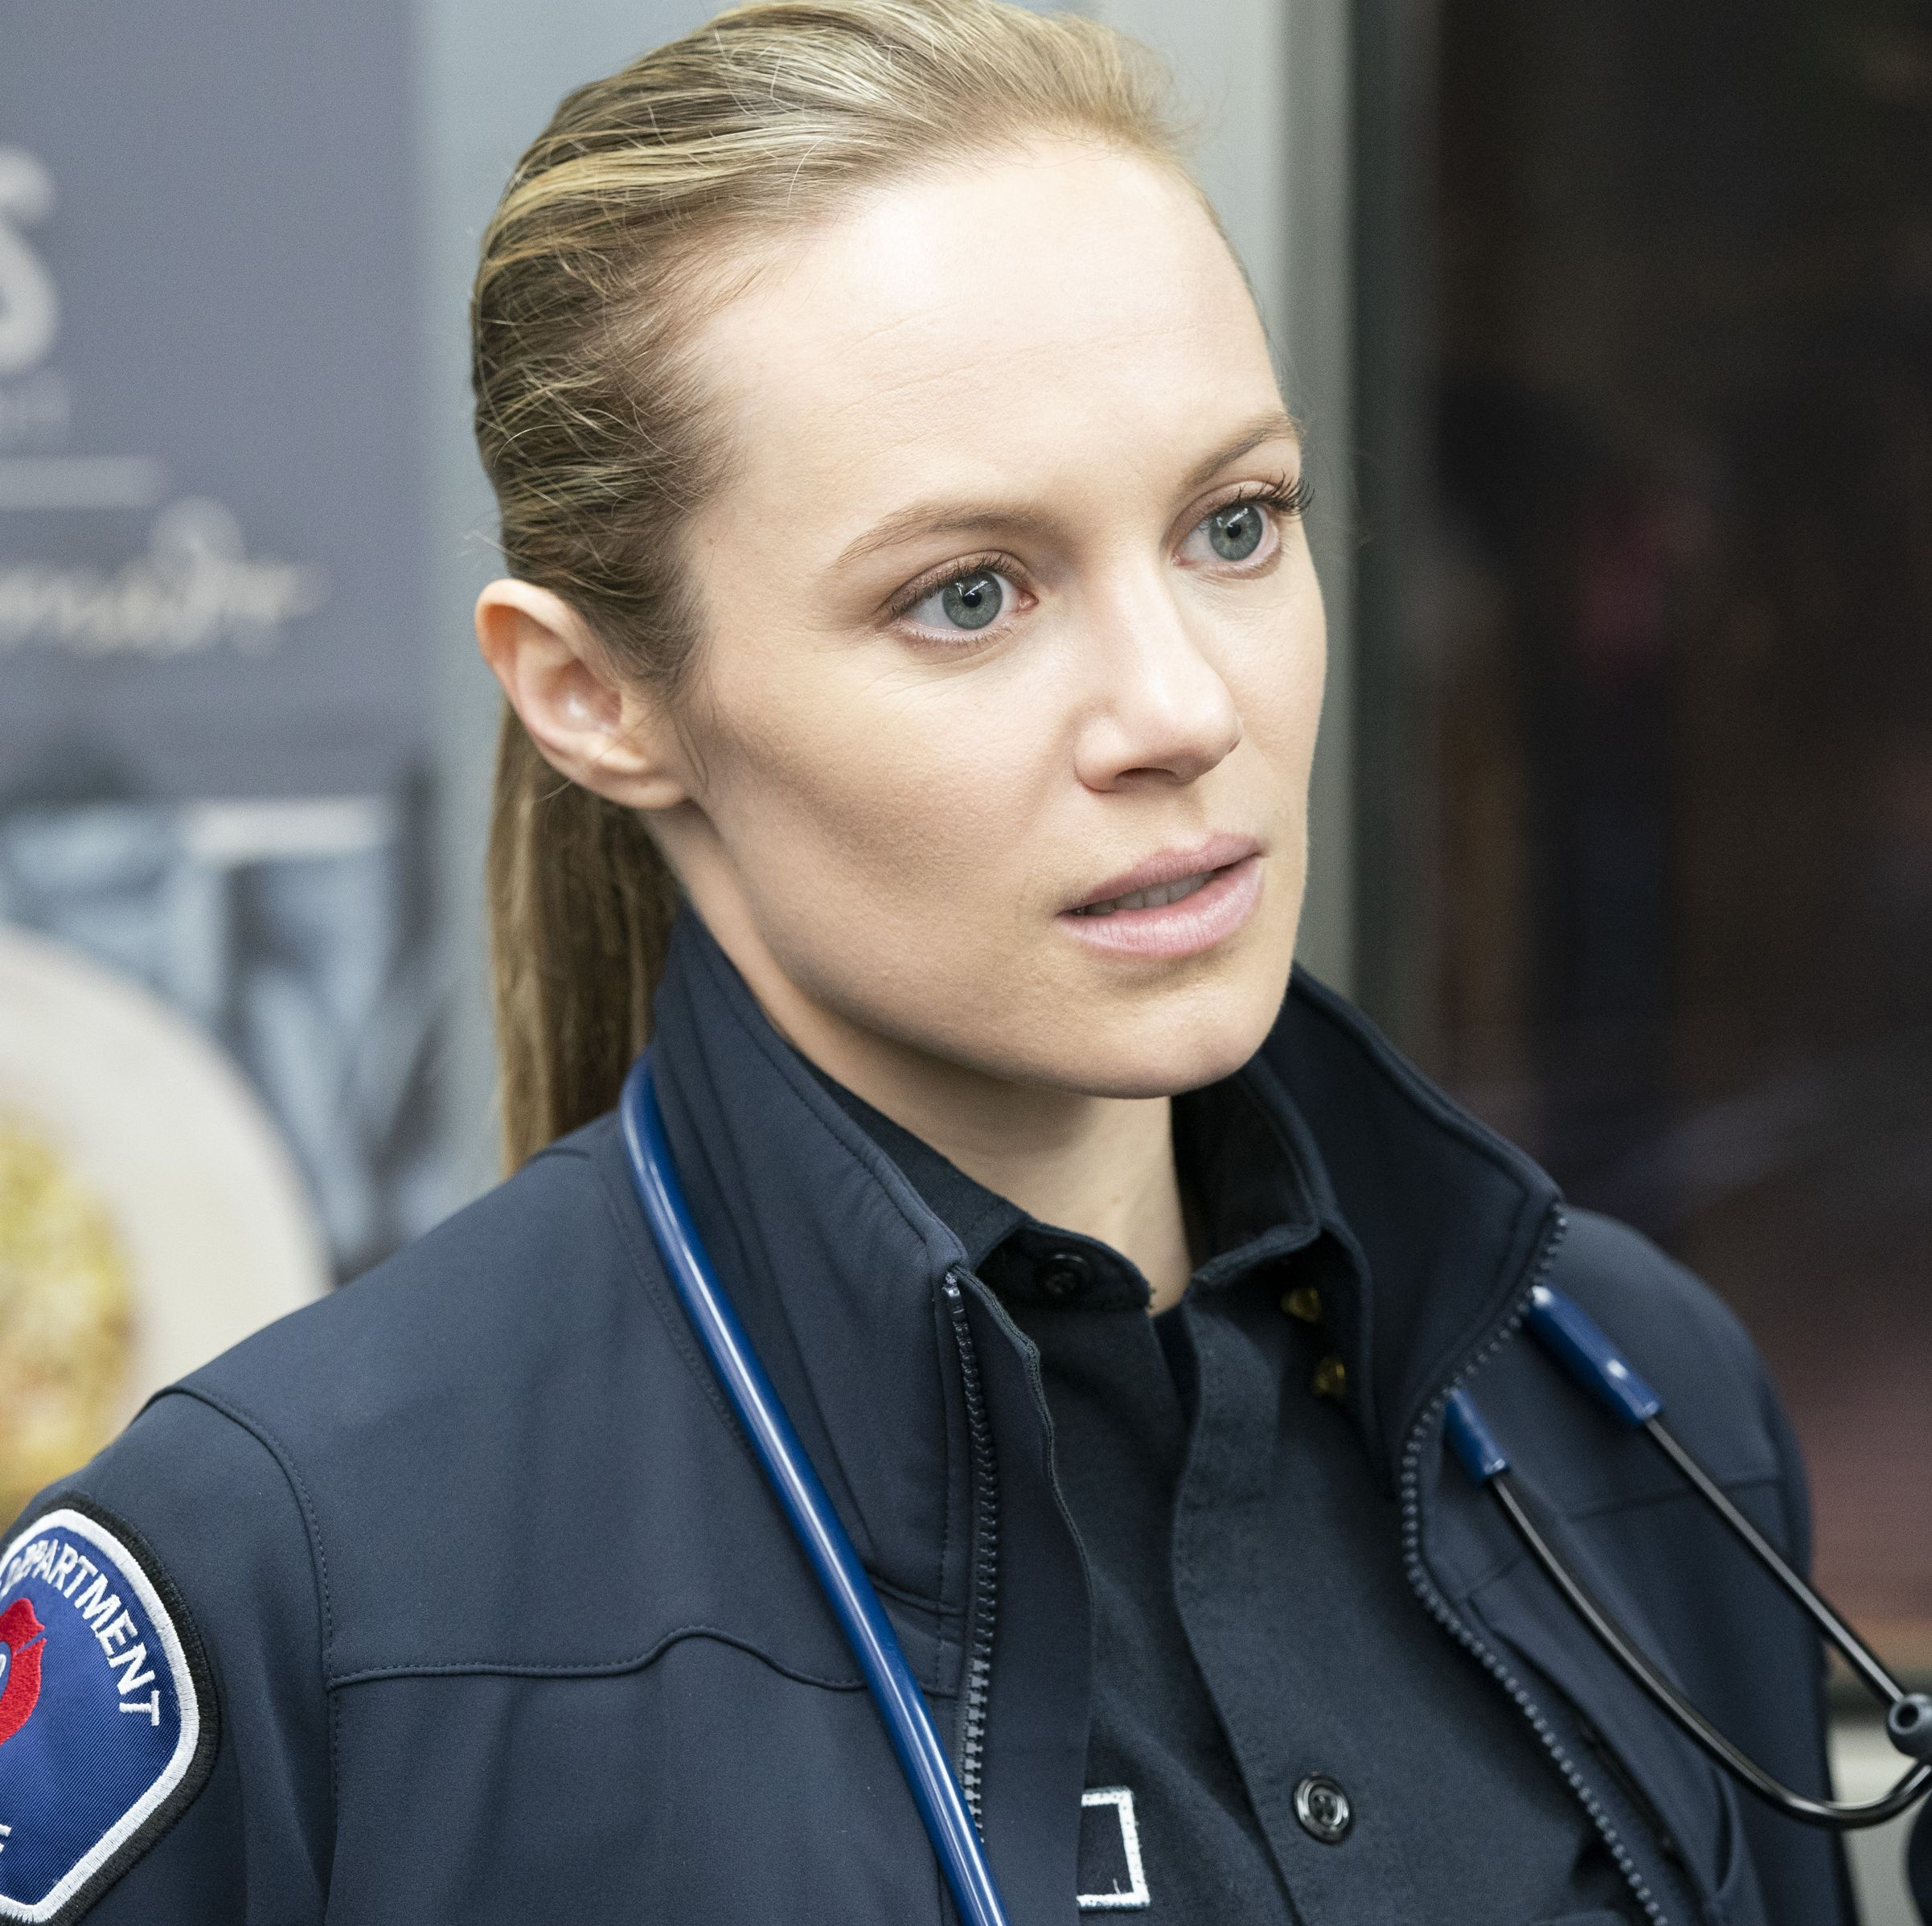 Station 19 star Danielle Savre teases what's next for Maya and Jack